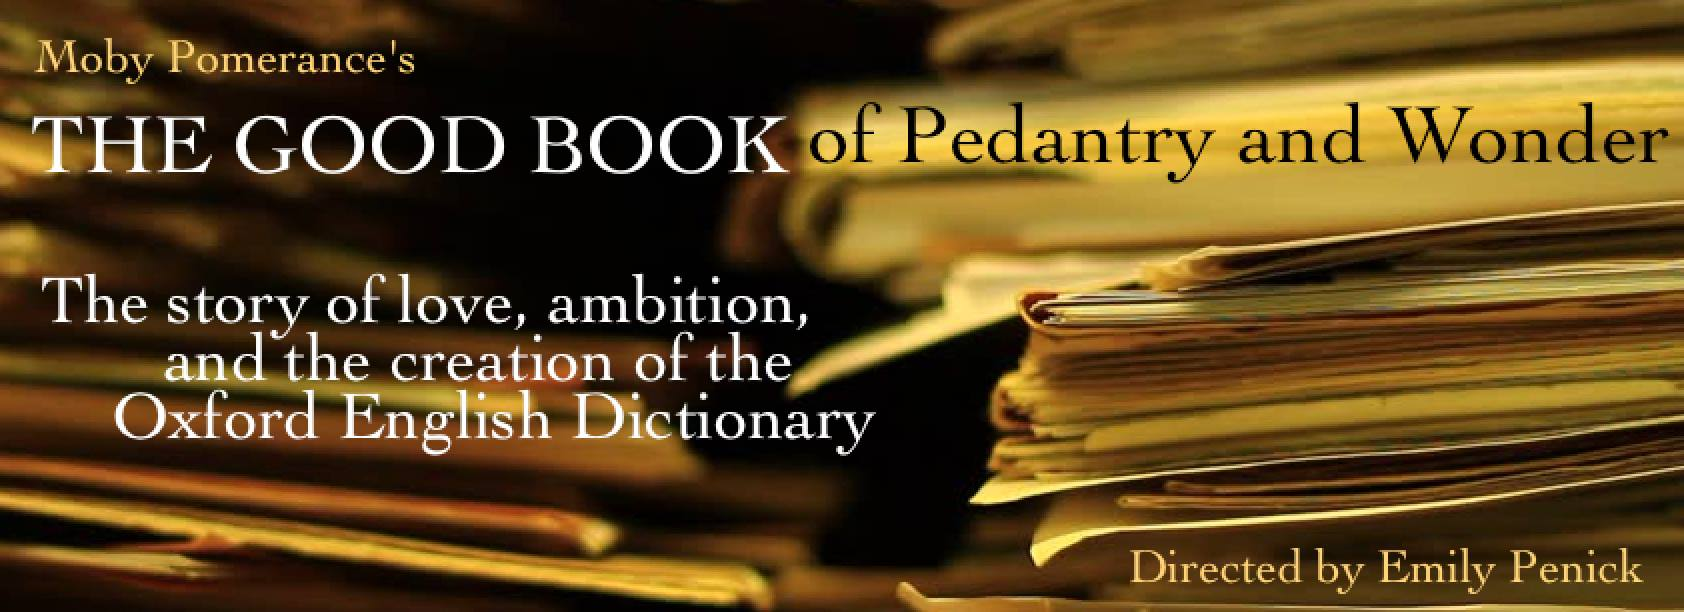 """This is one of those plays that makes me fall in love with acting all over again. I'm thrilled to be taking part in this invited staged reading of the beautiful, funny play """"The Good Book of Pedantry and Wonder"""" by Moby Pomerance tomorrow at 2pm. If you don't have a day job, come on over to the Acorn Theatre at Theatre Row and be swept away to Victorian England!  There will be a reception to follow."""